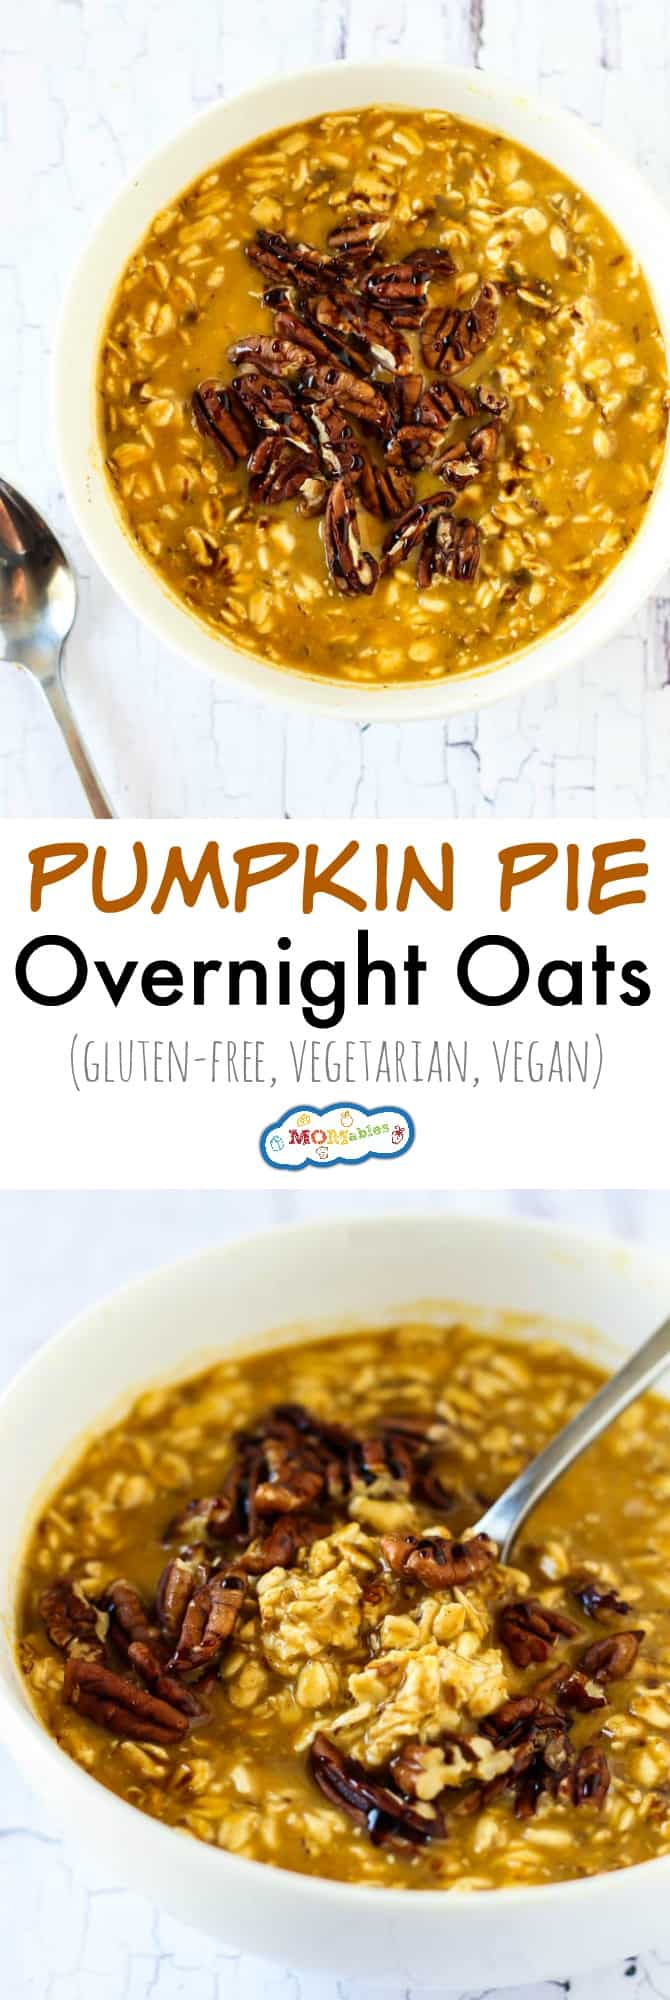 These Pumpkin Pie Overnight Oats have all the flavor you love in a healthy, gluten-free breakfast. A little prep the night before is all you have to do!